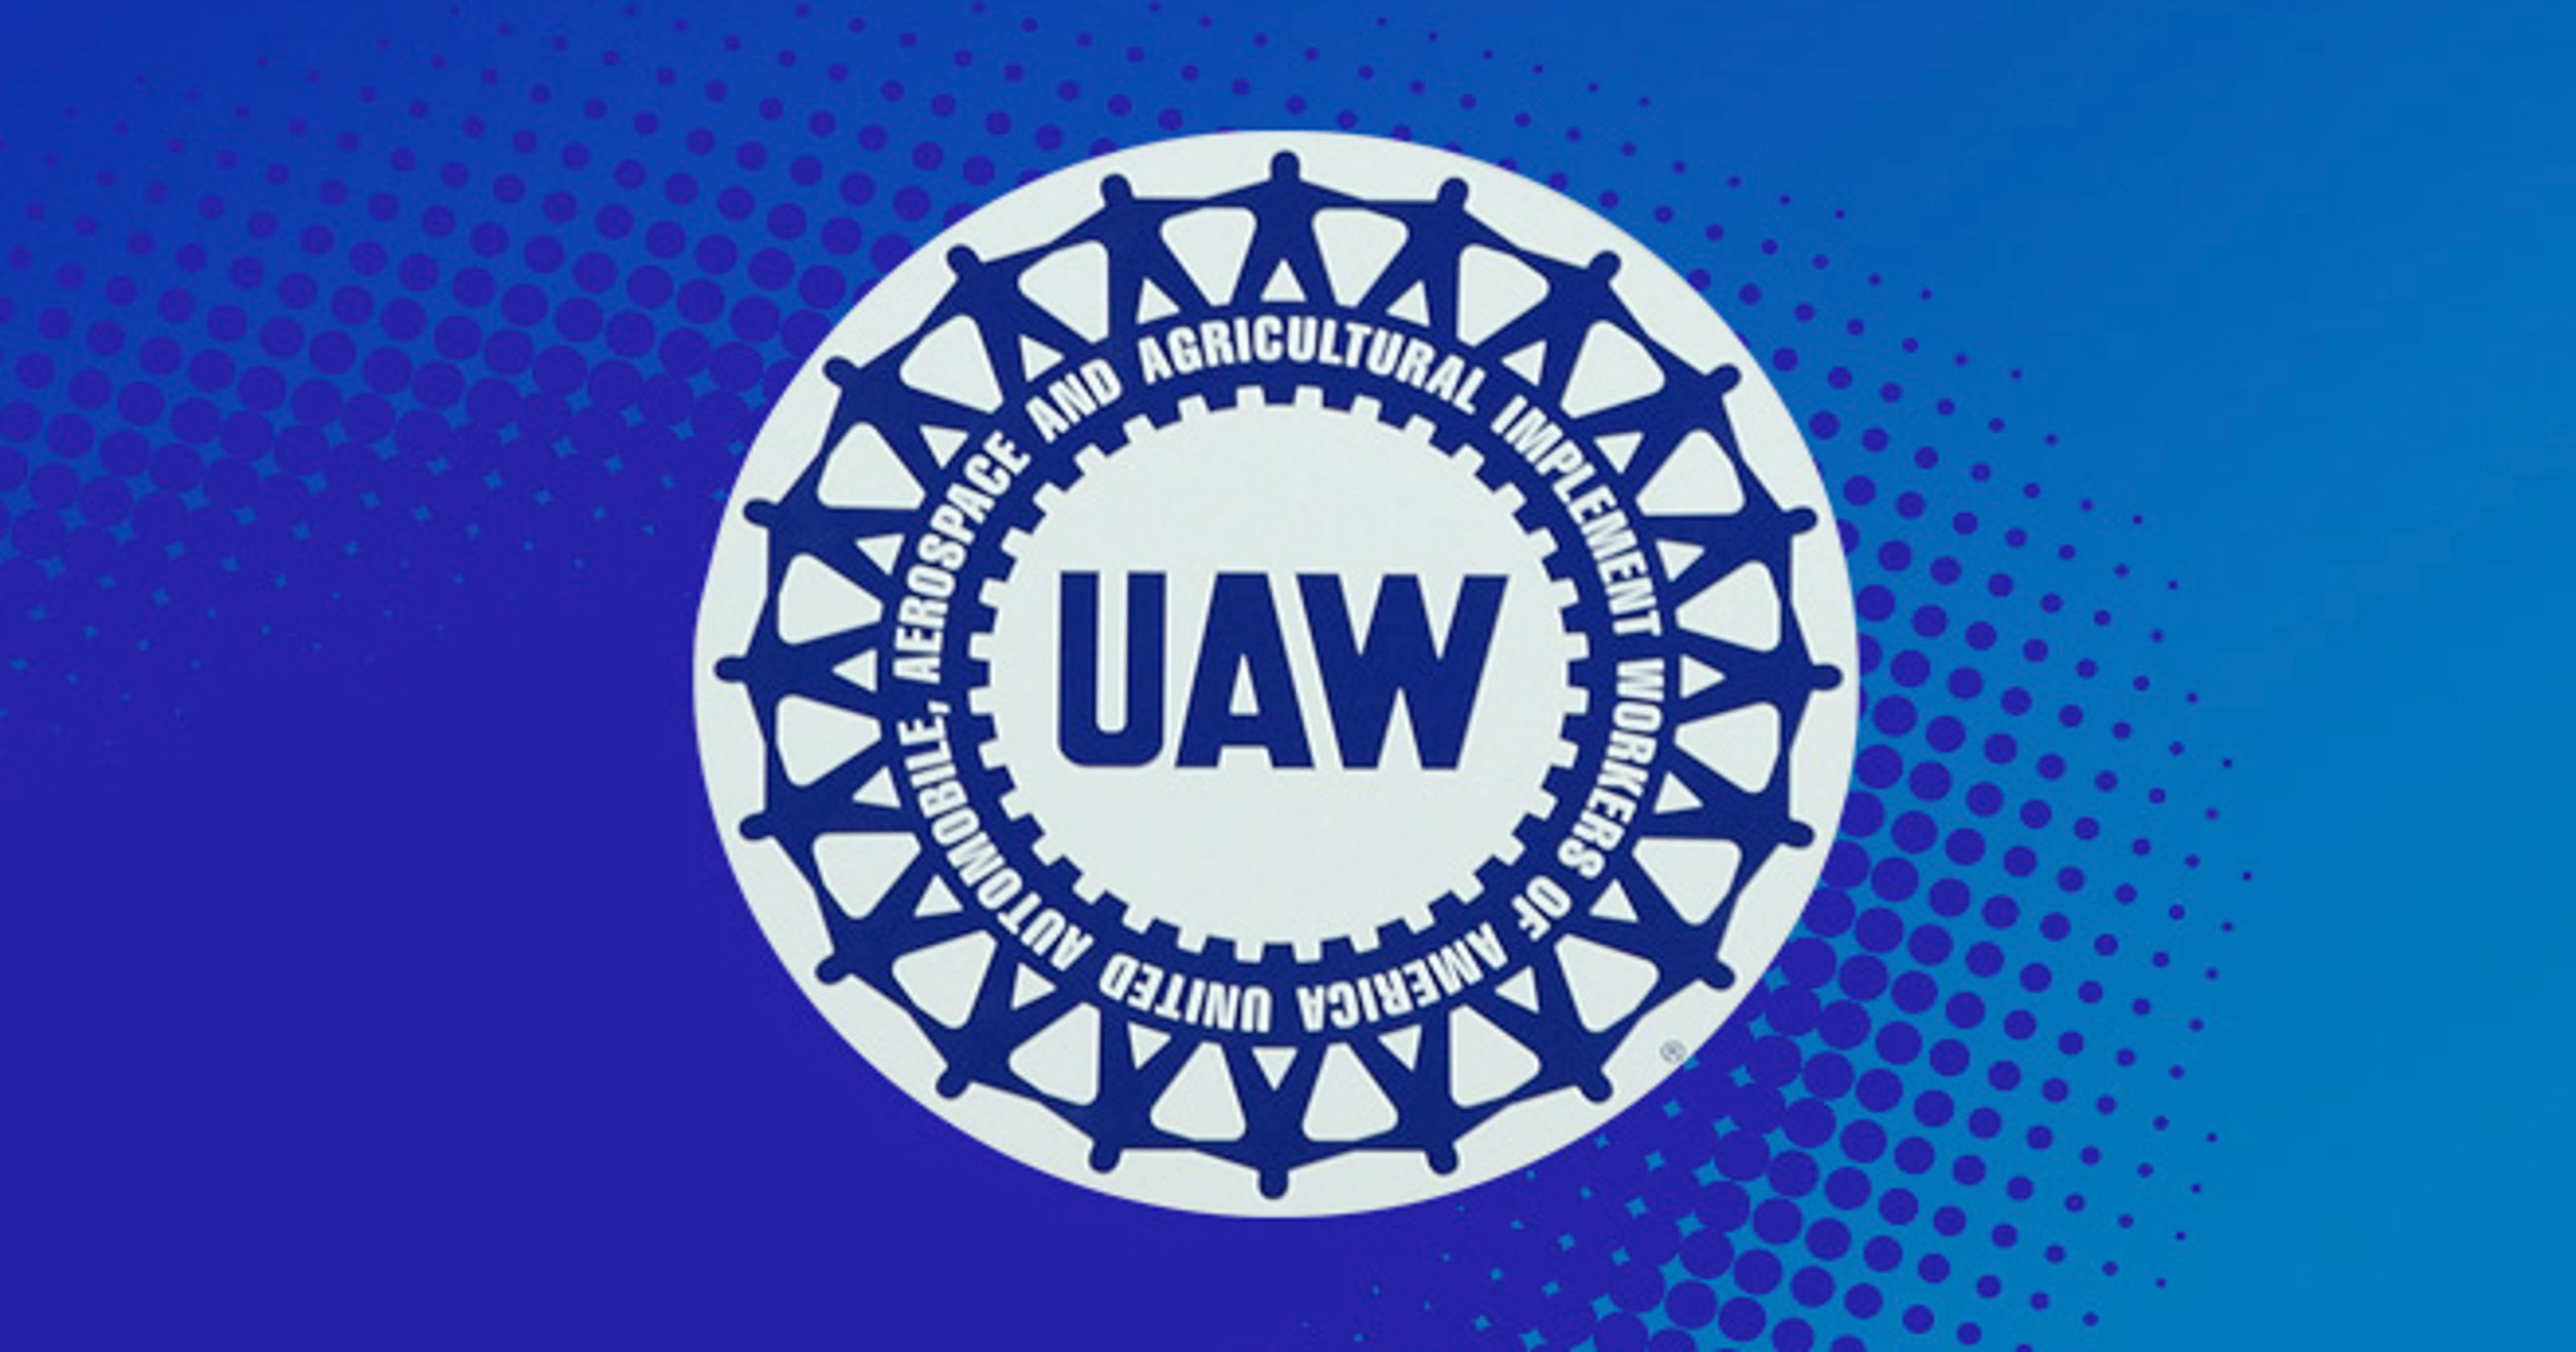 Nine years of profit sharing for UAW takes a turn amid restructuring